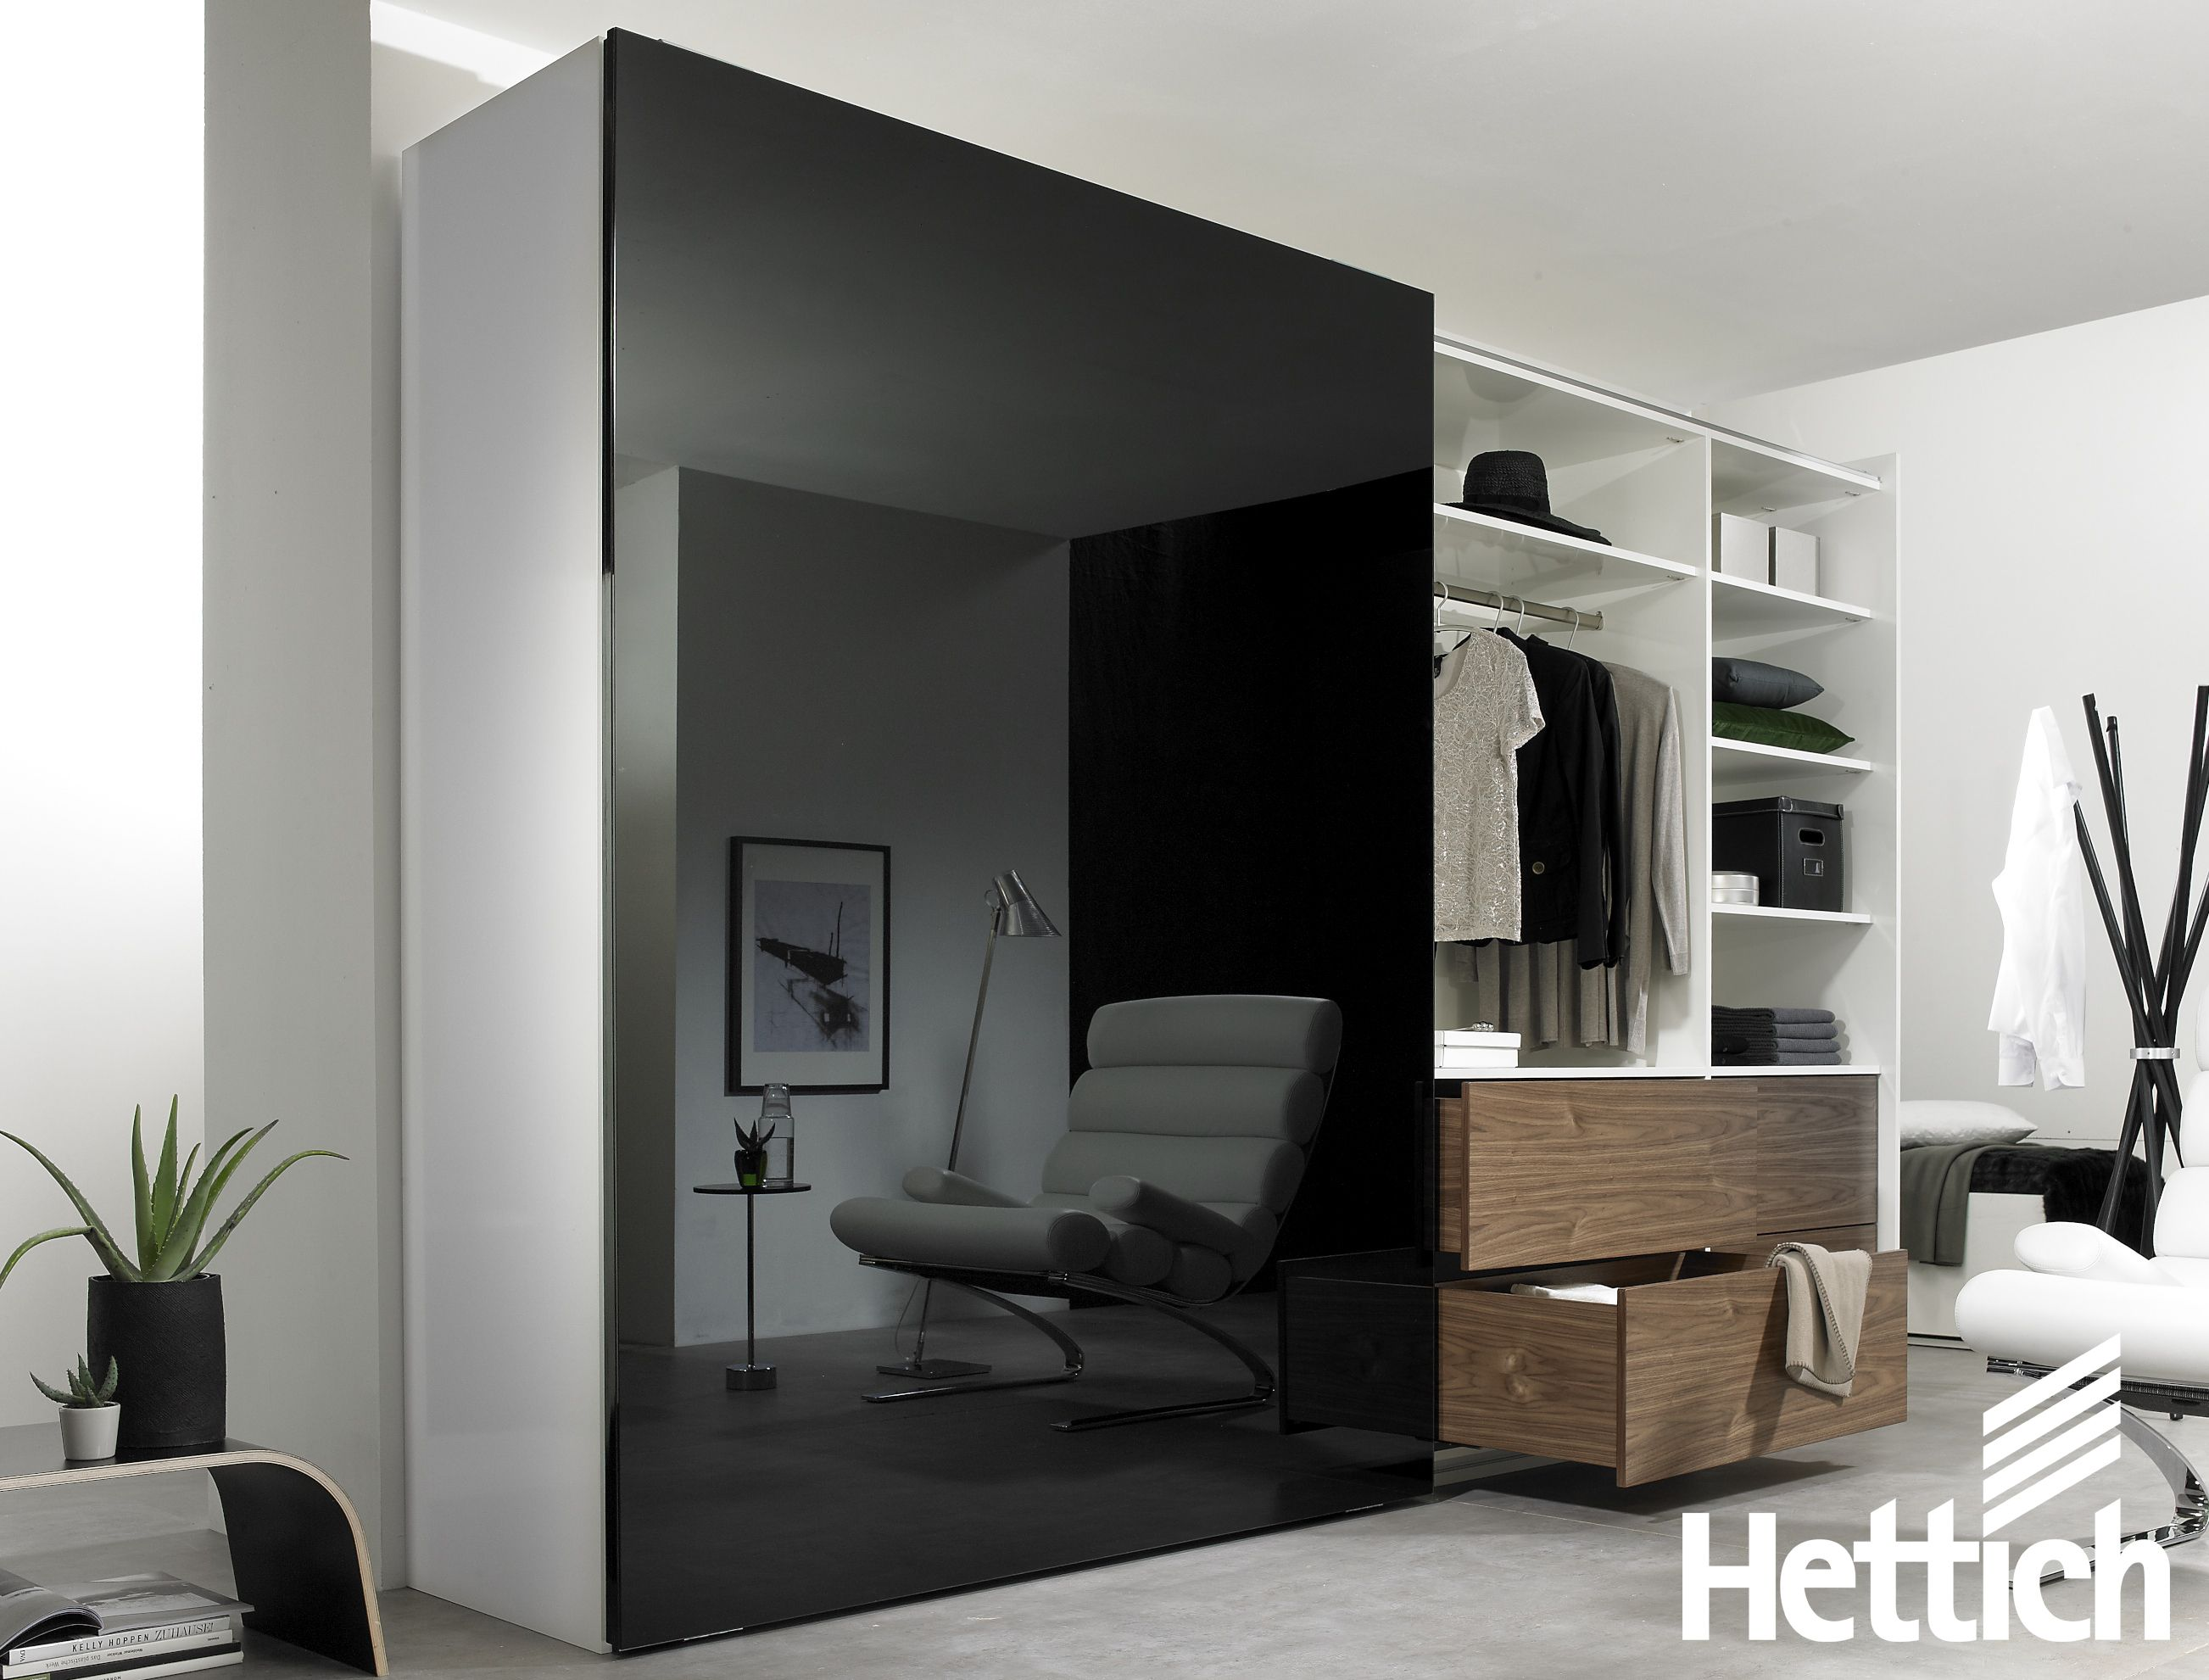 Arcitech Drawers Are The Perfect Storage Solution For Your Wardrobe Click On The Pin To Find Out More Dream Furniture Hettich Furniture